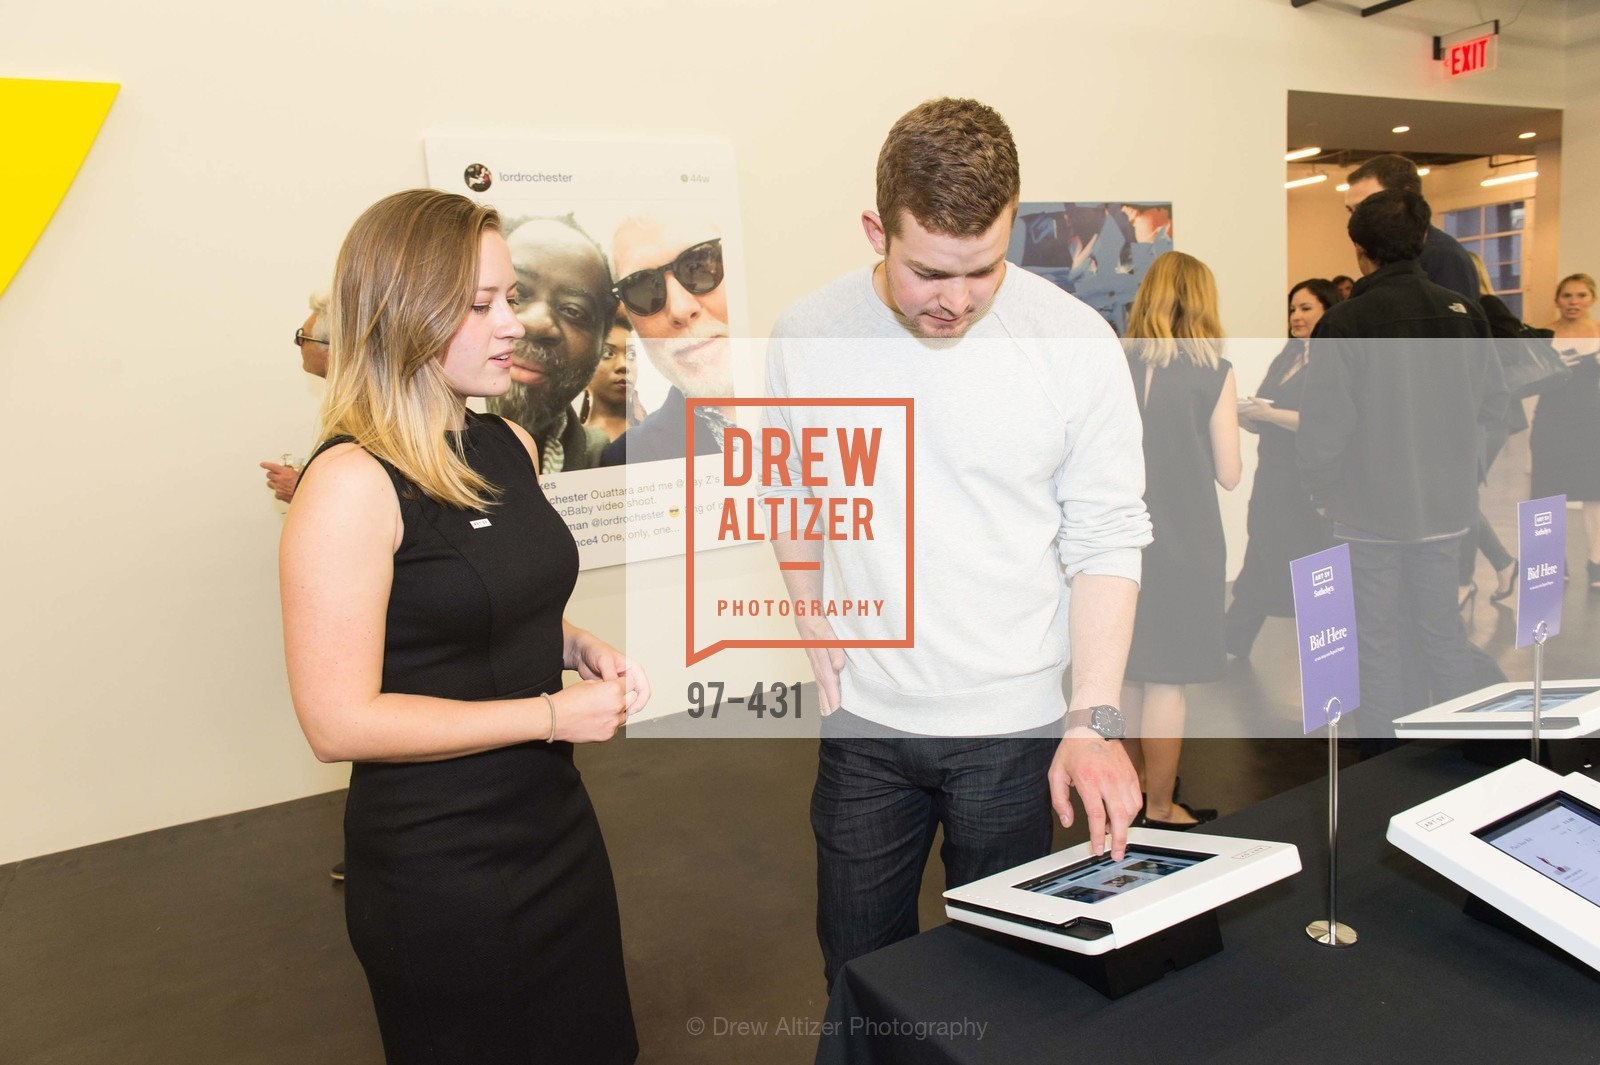 Alessandra Castillo, Ryan Dredin, Artsy + Sotheby's Closing Party, Fused. 1401 16th Street, October 30th, 2015,Drew Altizer, Drew Altizer Photography, full-service event agency, private events, San Francisco photographer, photographer California